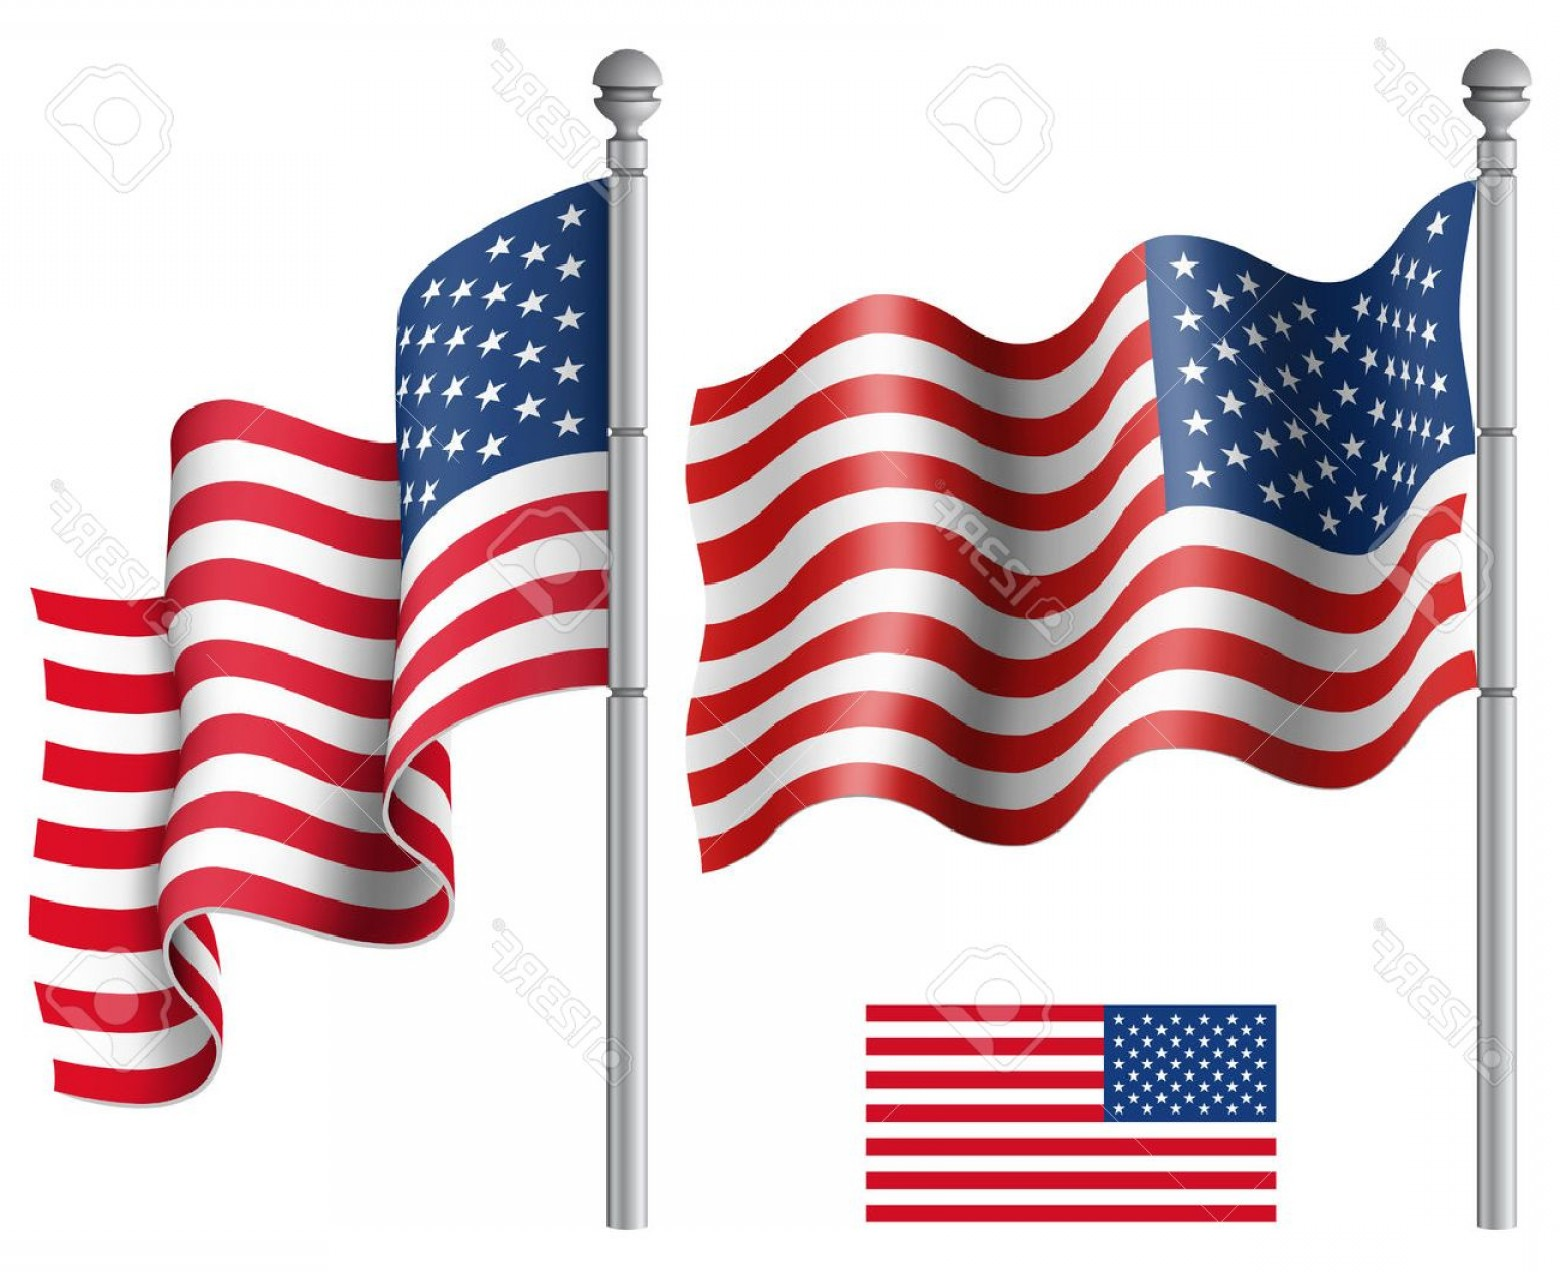 American Flag On Pole Vector: Photostock Vector Set Of American Flags With The Flagpole Vector Illustration Saved In Eps File With Transparencies